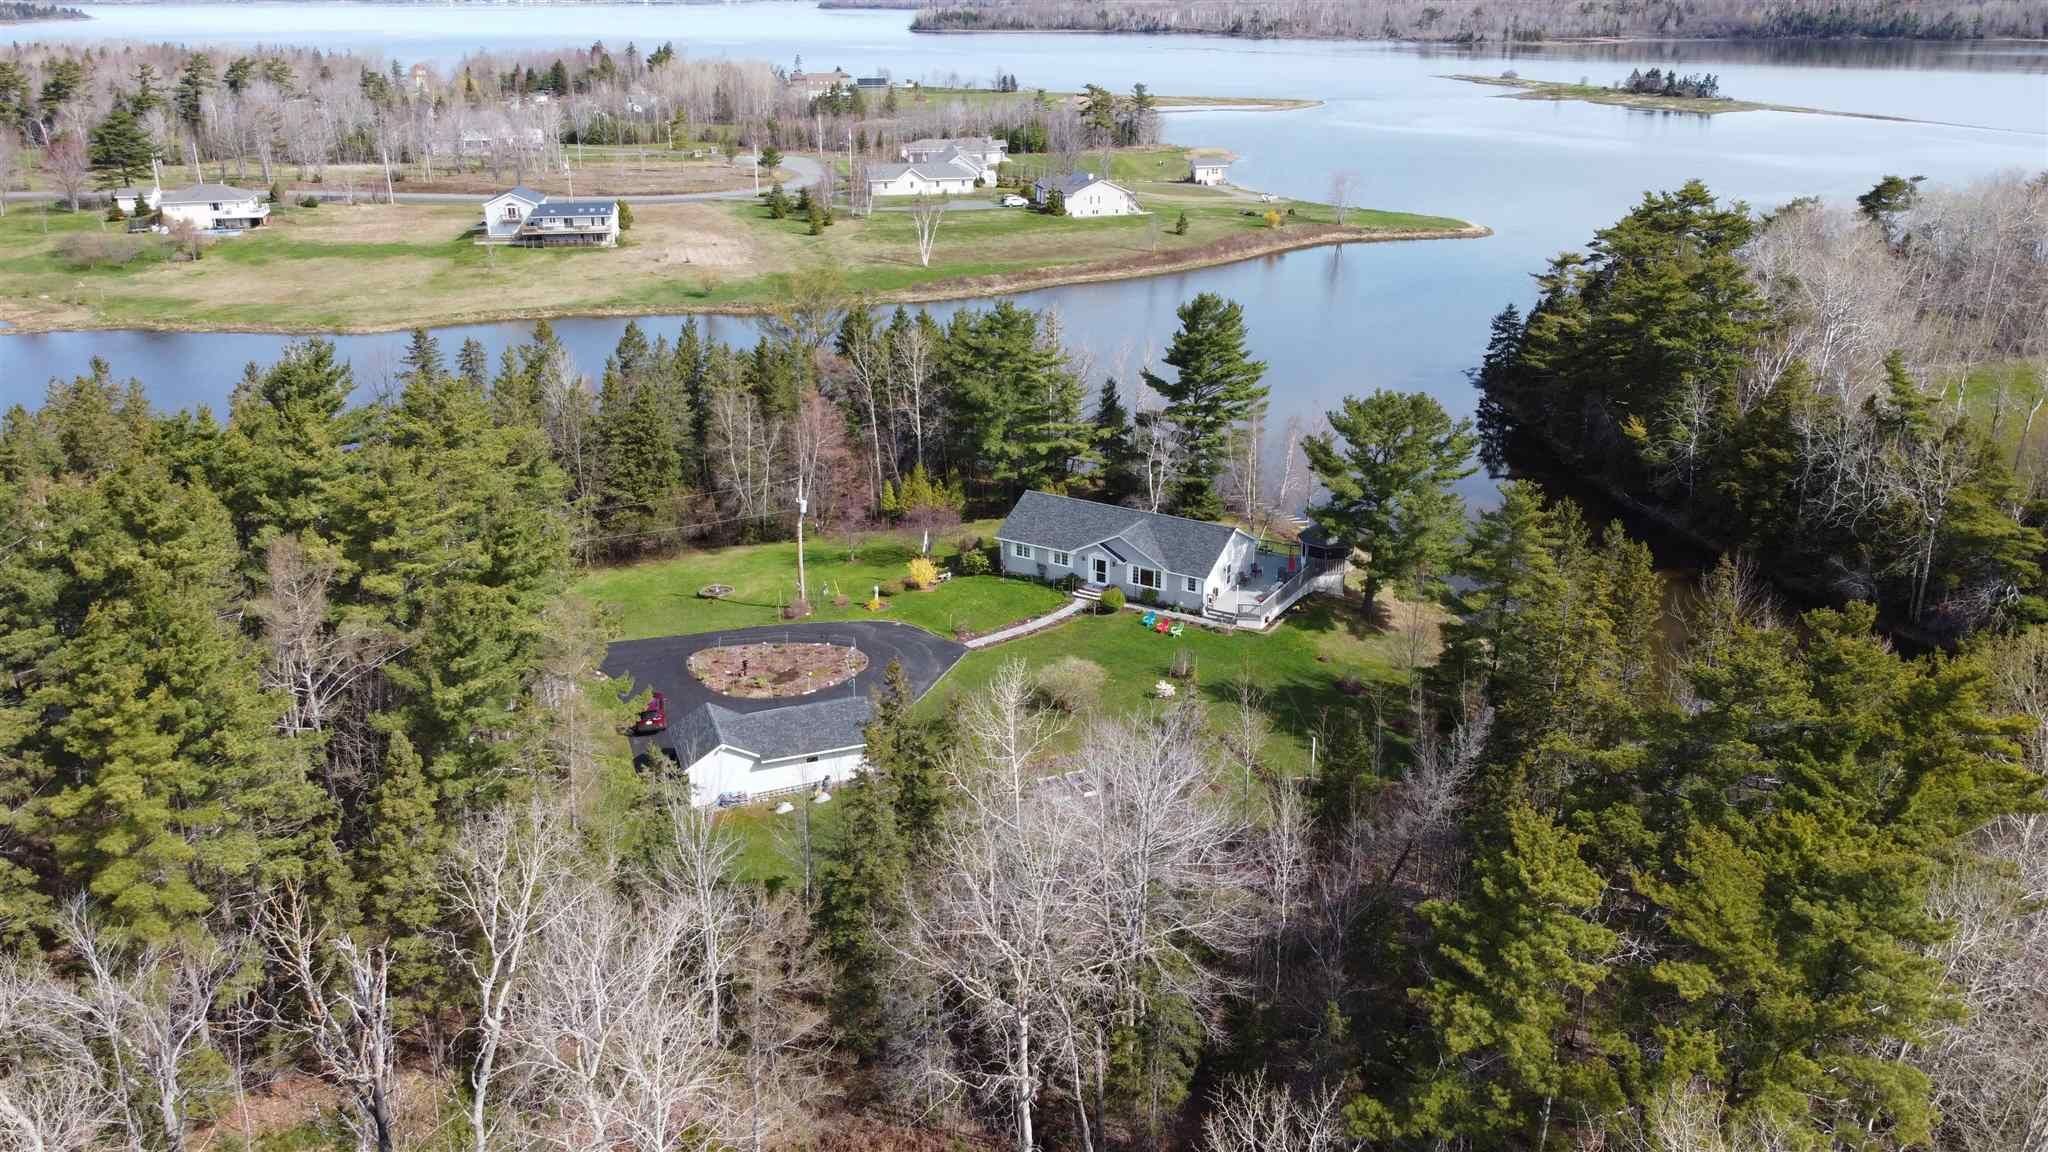 Main Photo: 37 Delaney Quay Lane in Abercrombie: 108-Rural Pictou County Residential for sale (Northern Region)  : MLS®# 202111462